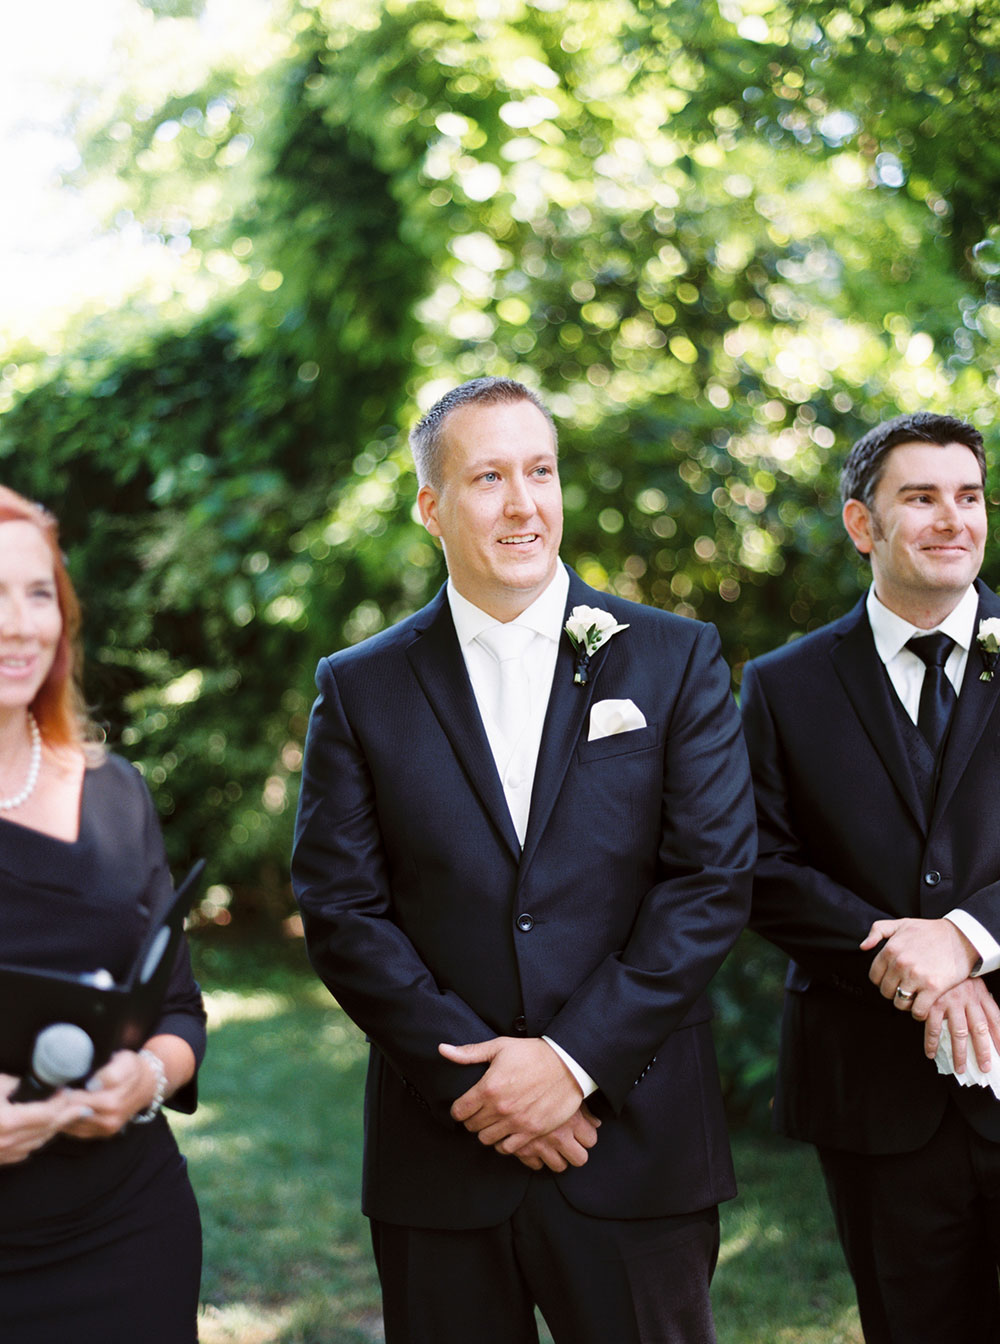 kurtz-orchards-wedding-gracewood-estate-niagara-on-the-lake-photo-by-katie-nicolle-photography-0021.JPG